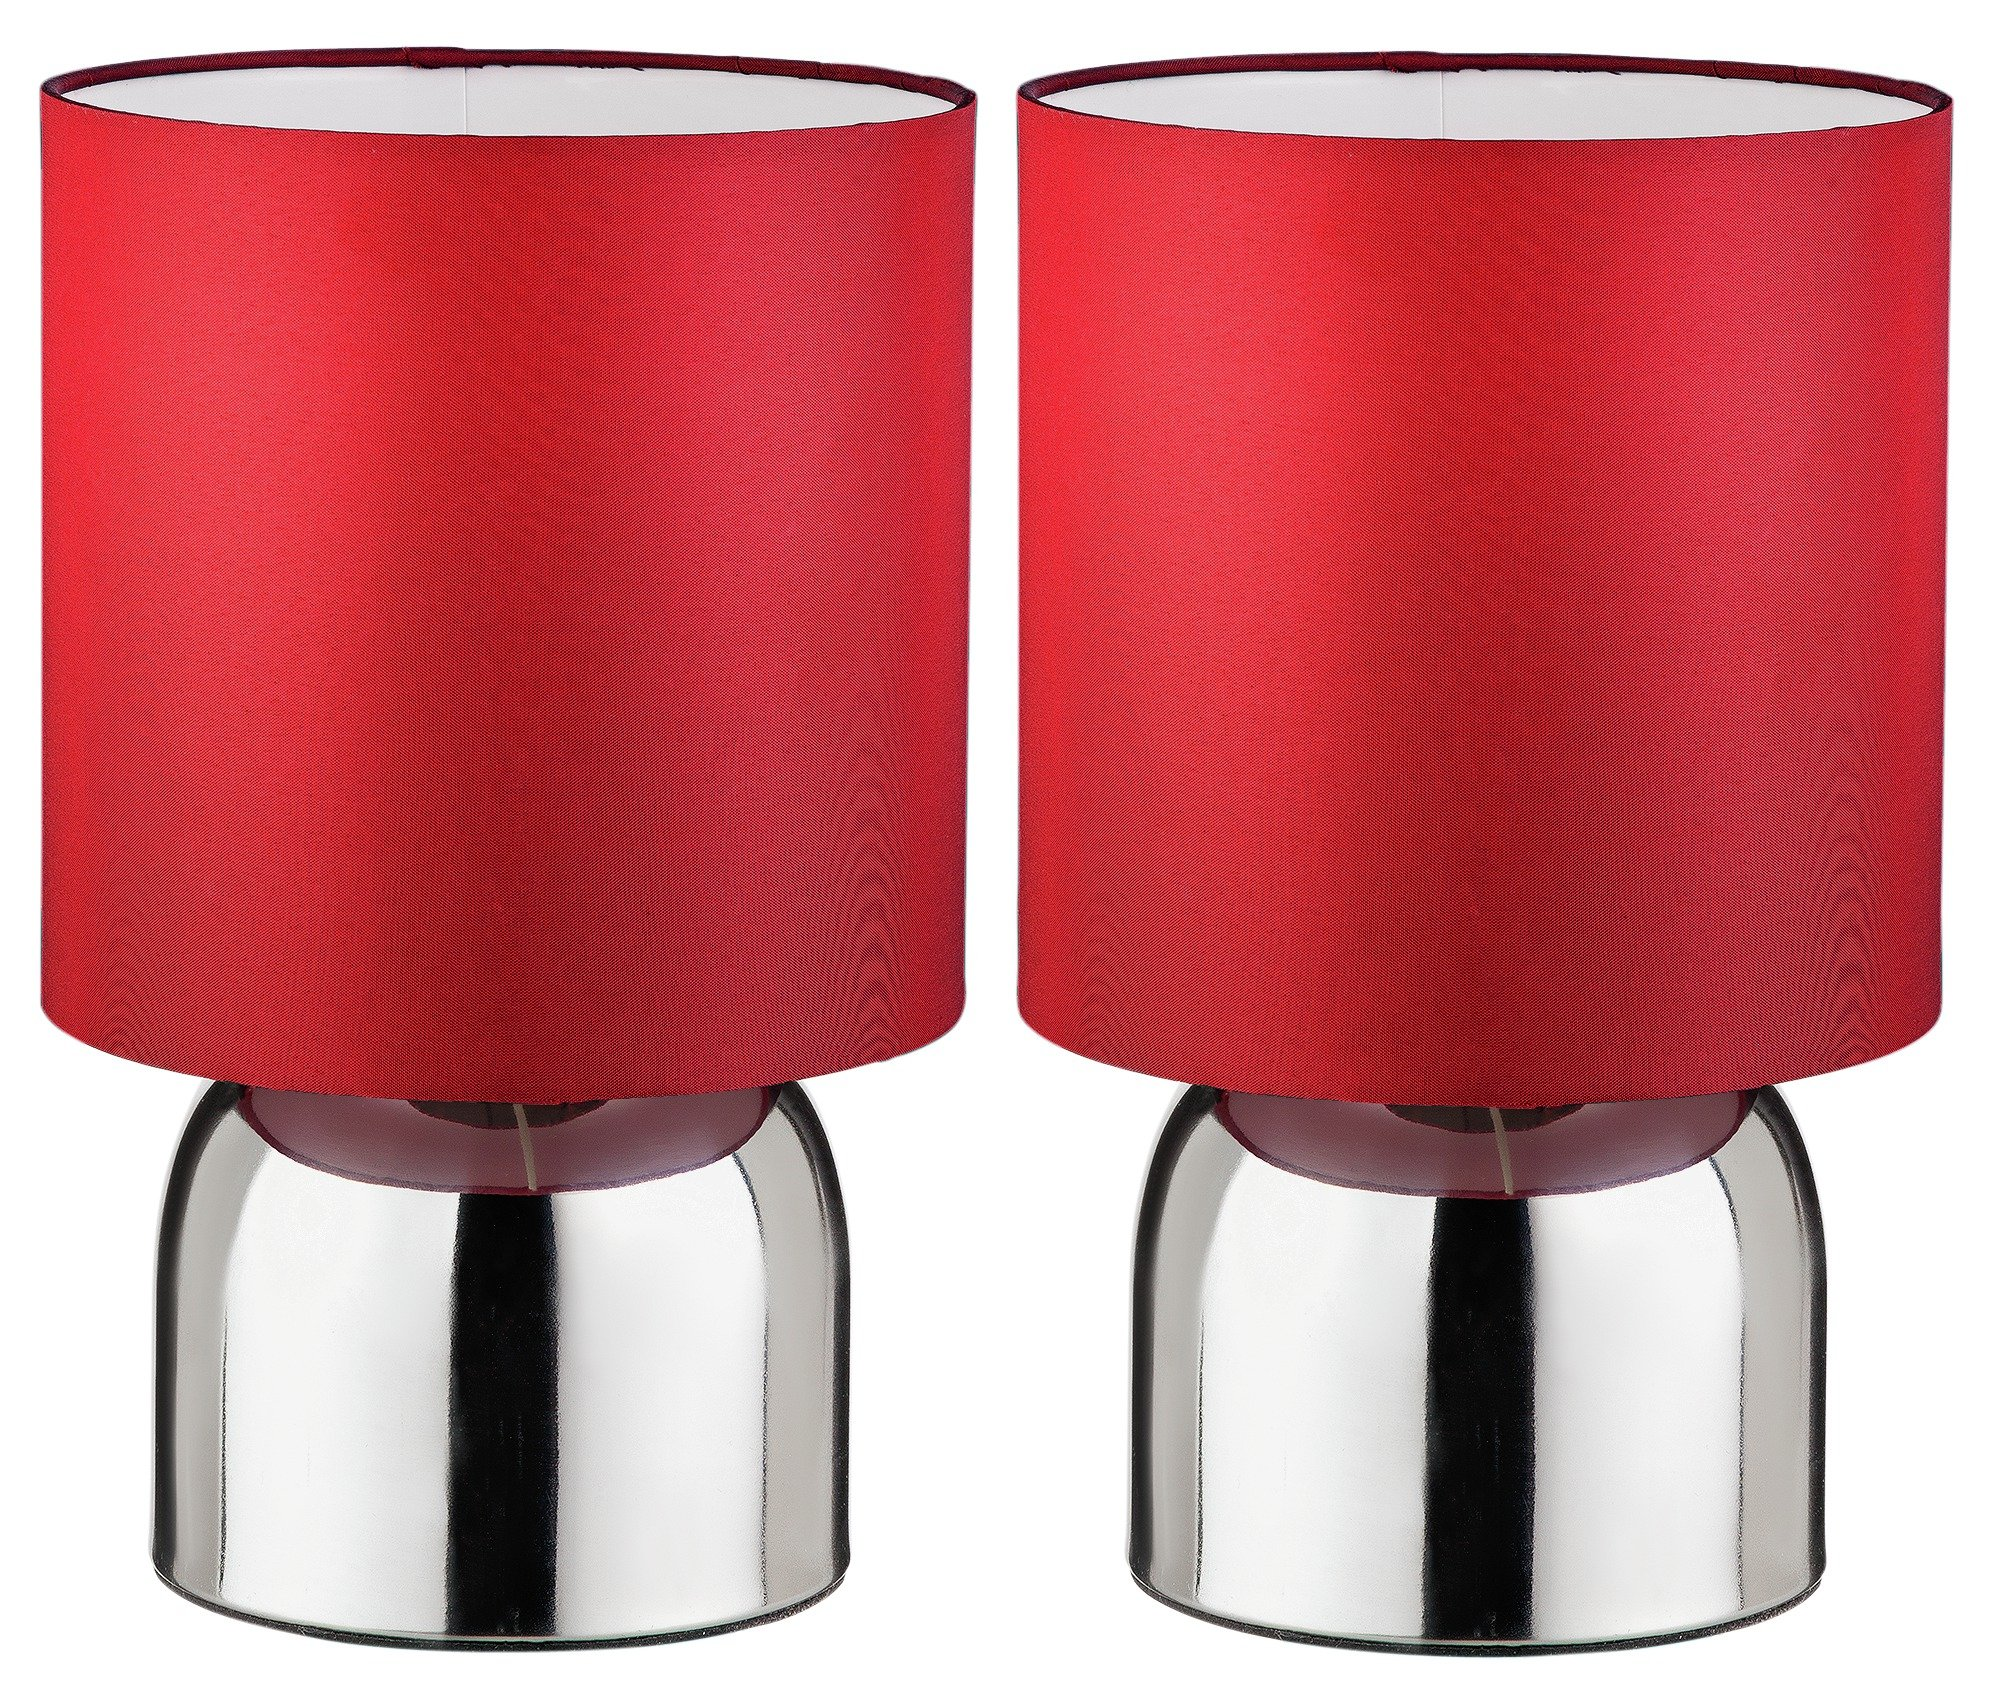 Image of ColourMatch - Pair of Touch - Table Lamps - Poppy Red